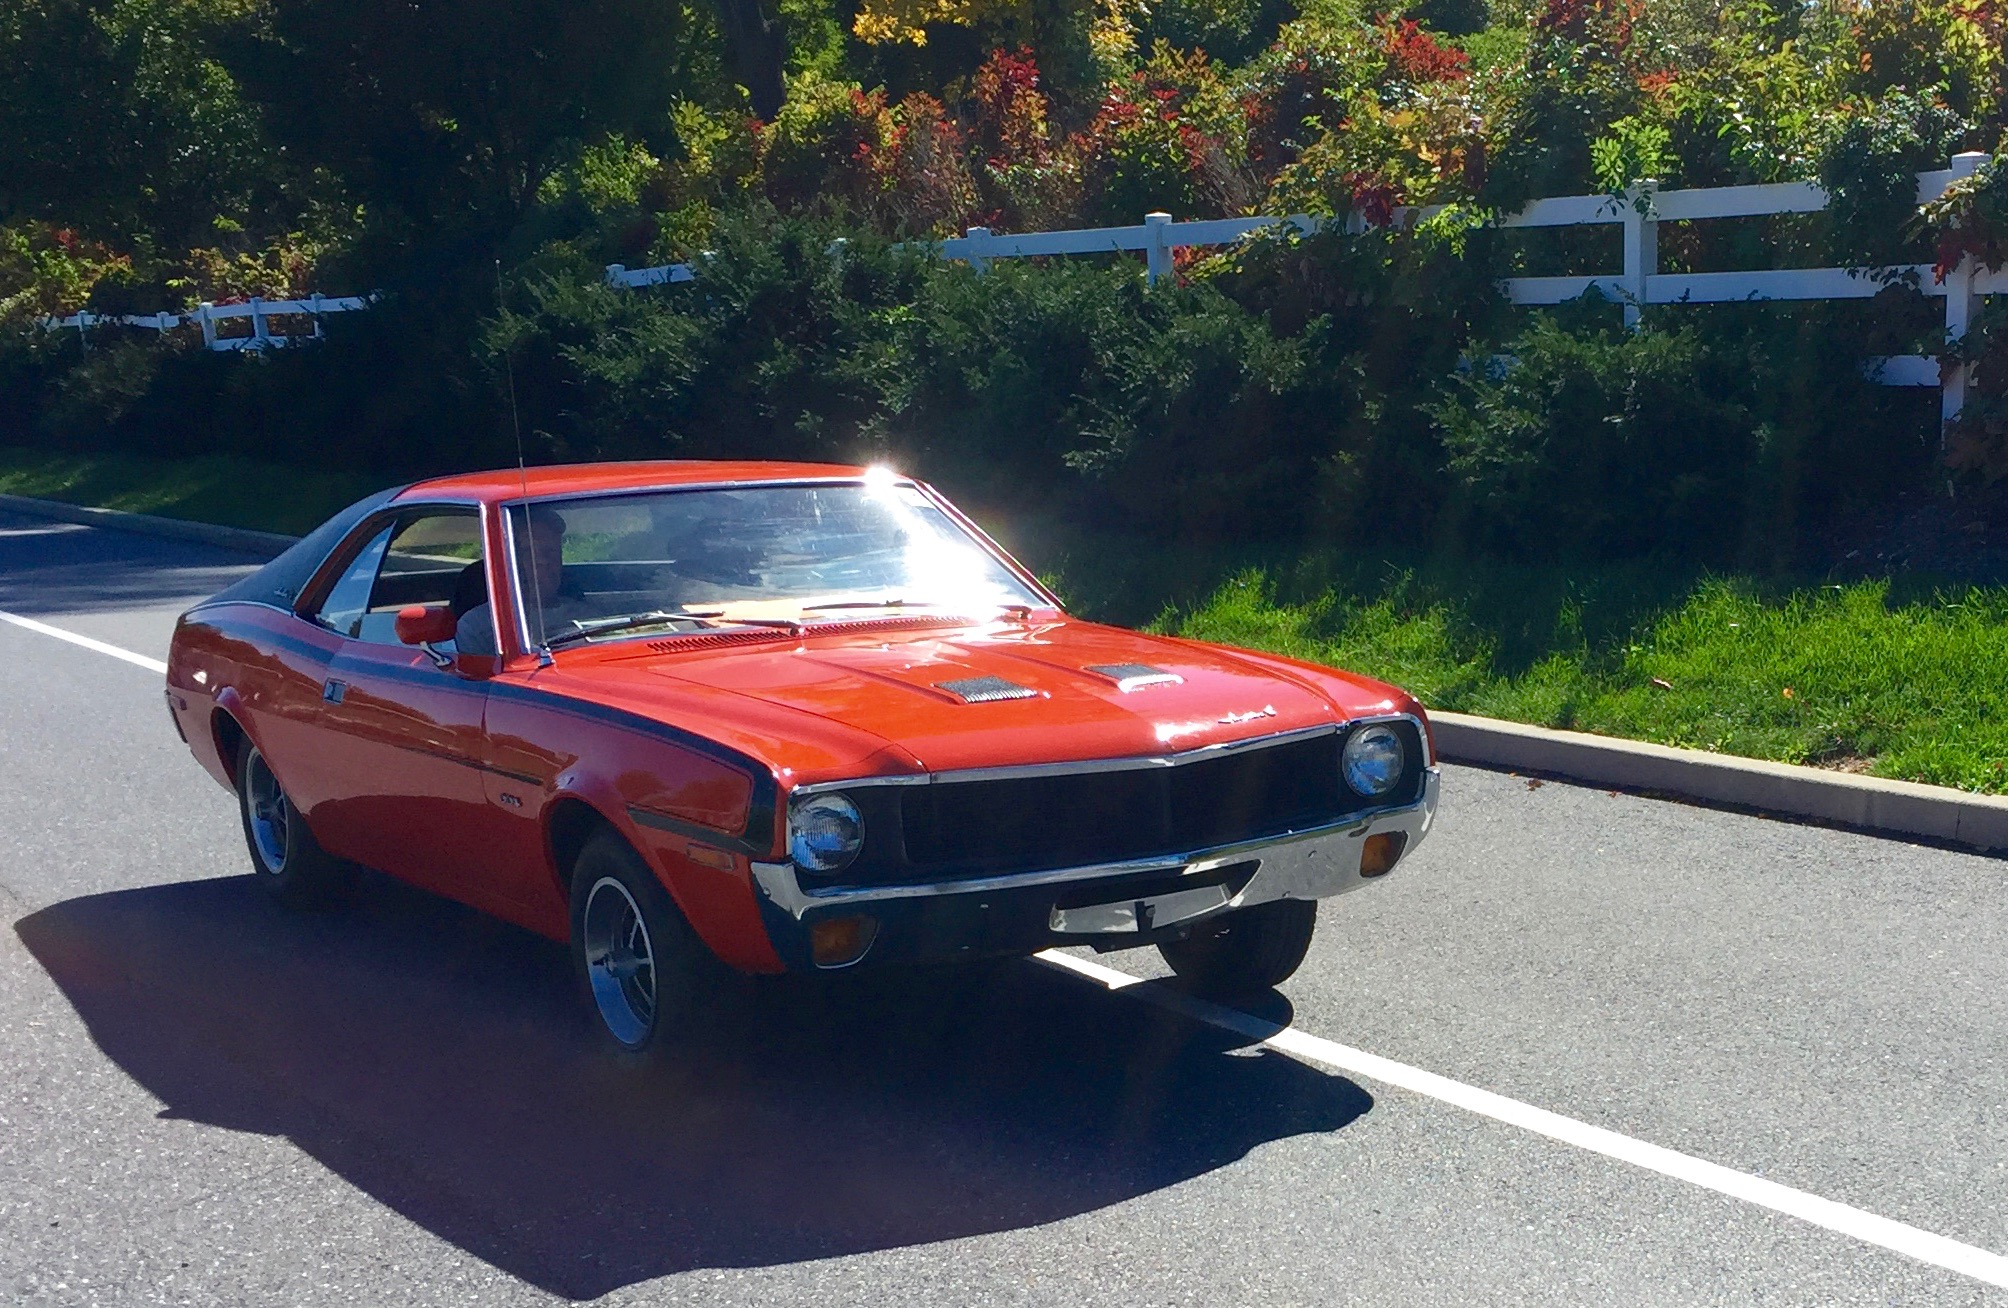 file1970 amc javelin 304 base model red with black canopy roof and c stripes - Open Canopy 2015